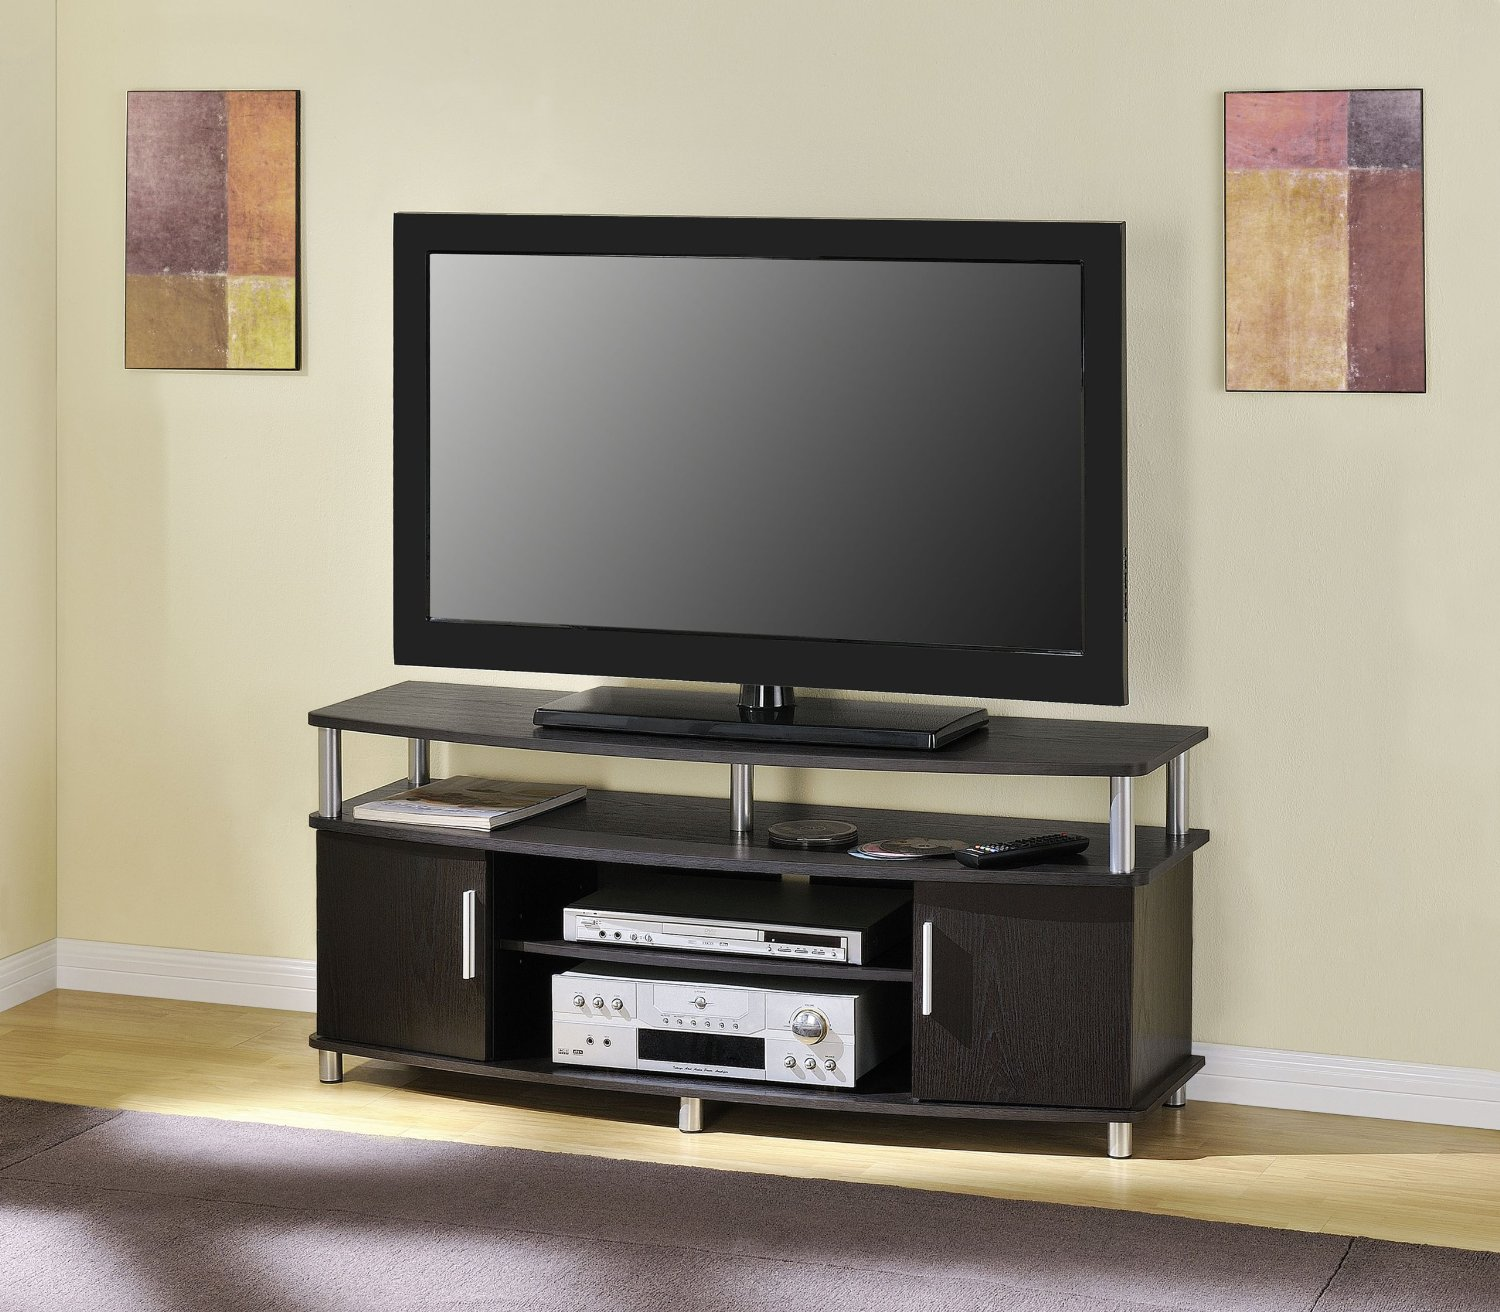 Sauder Entertainment Center Discontinued | Sauder Tv Stands | Tv Stands Sauder